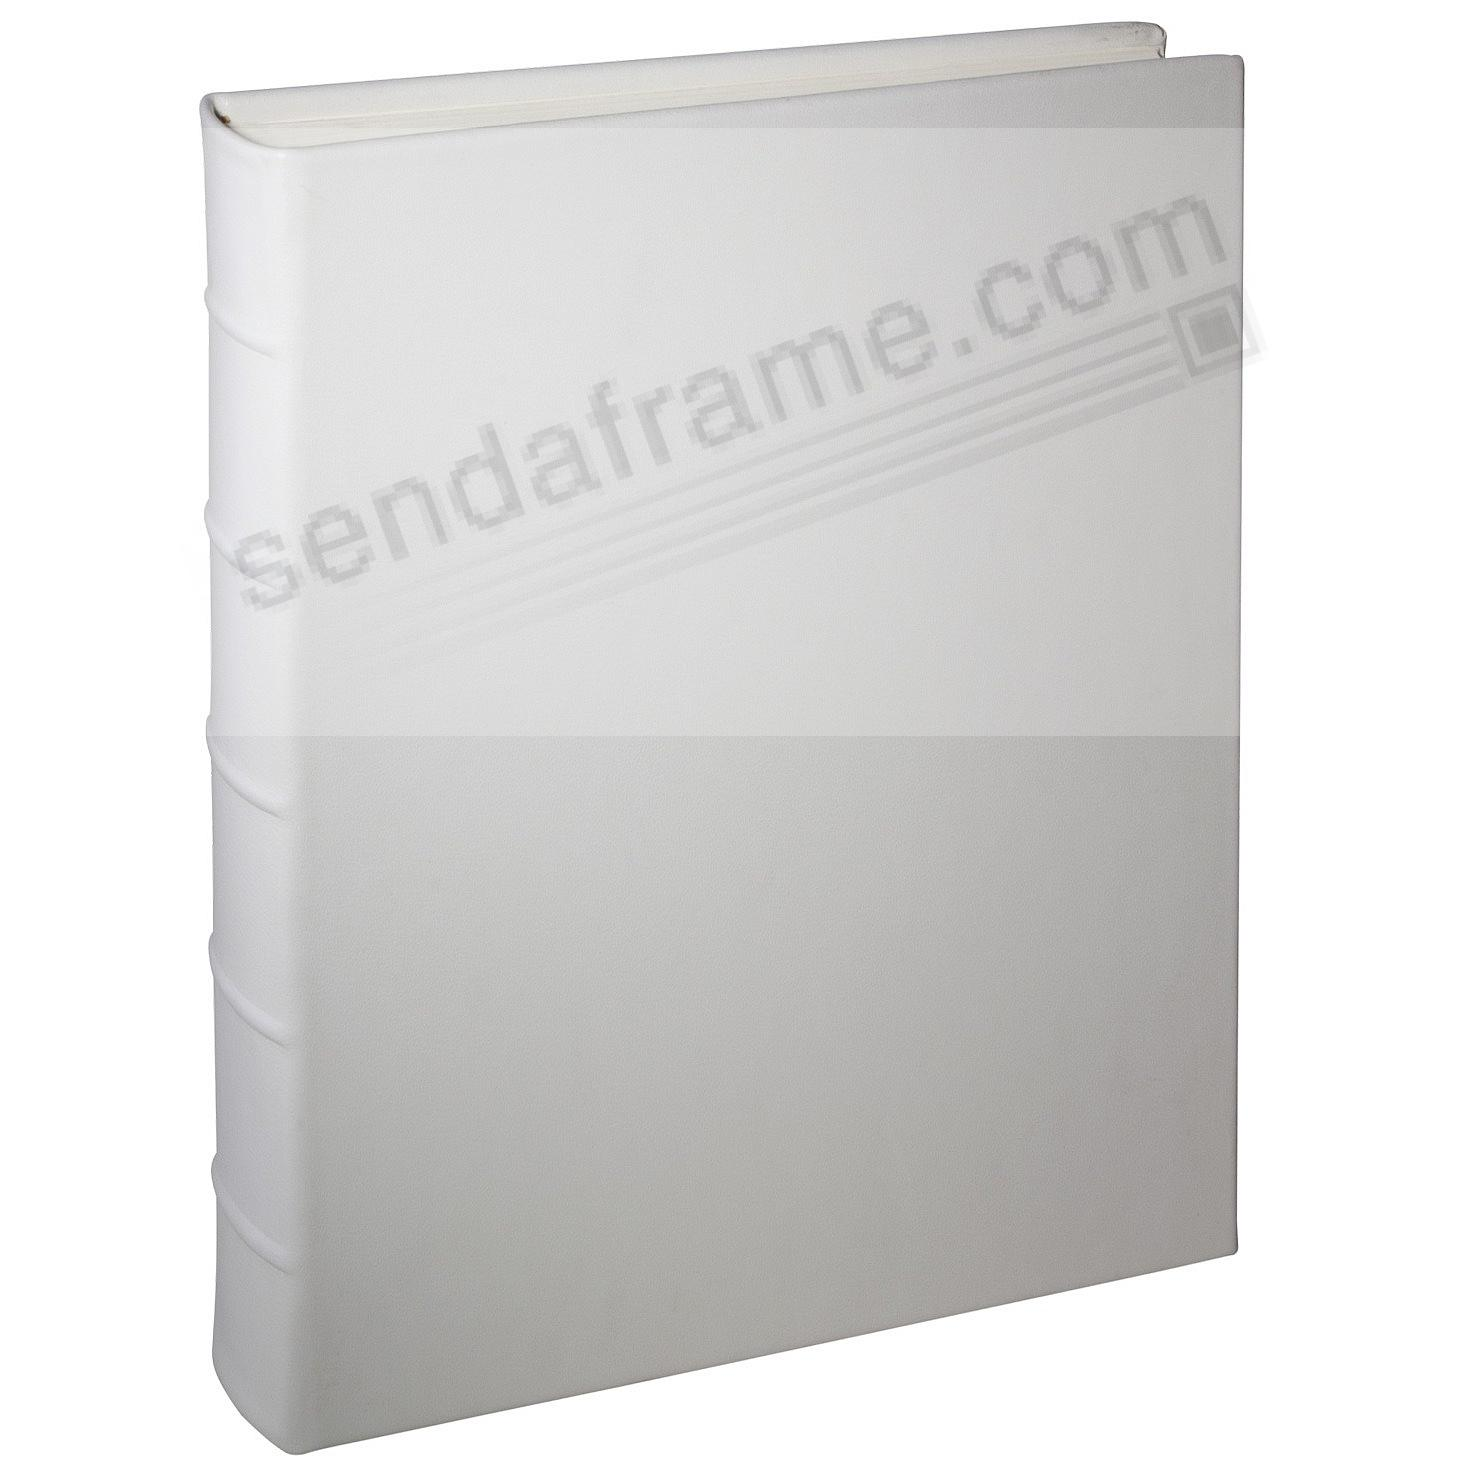 Wedding White Leather Medium Bound Album<br>by Graphic Image&trade;